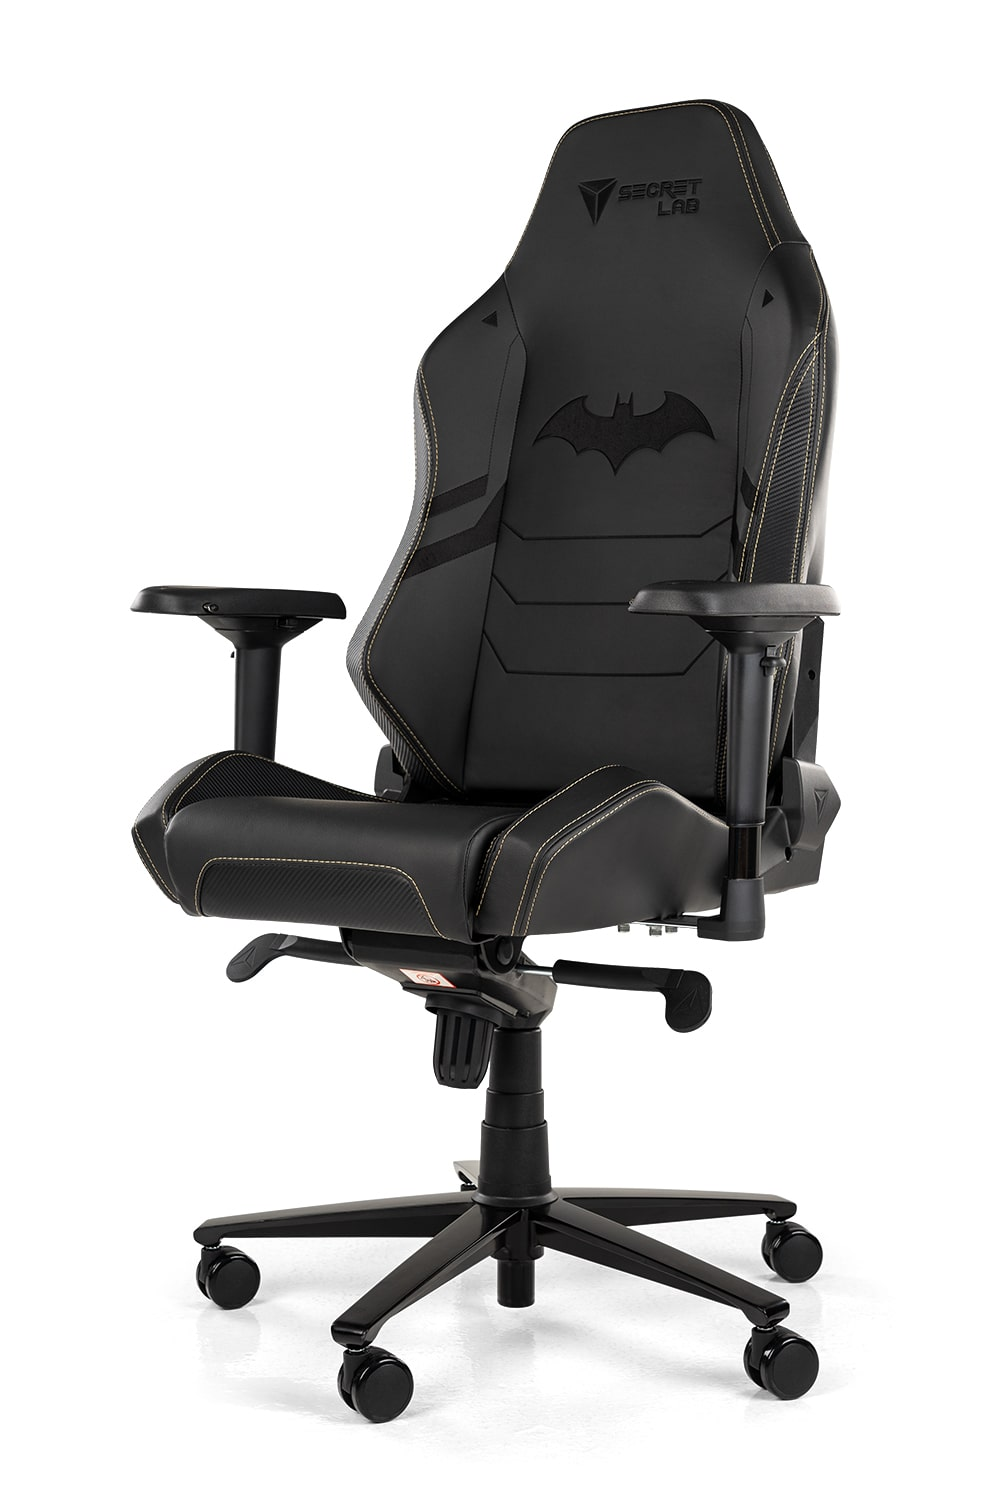 Secretlab OMEGA Series - Dark Knight Special Edition Gaming Chair